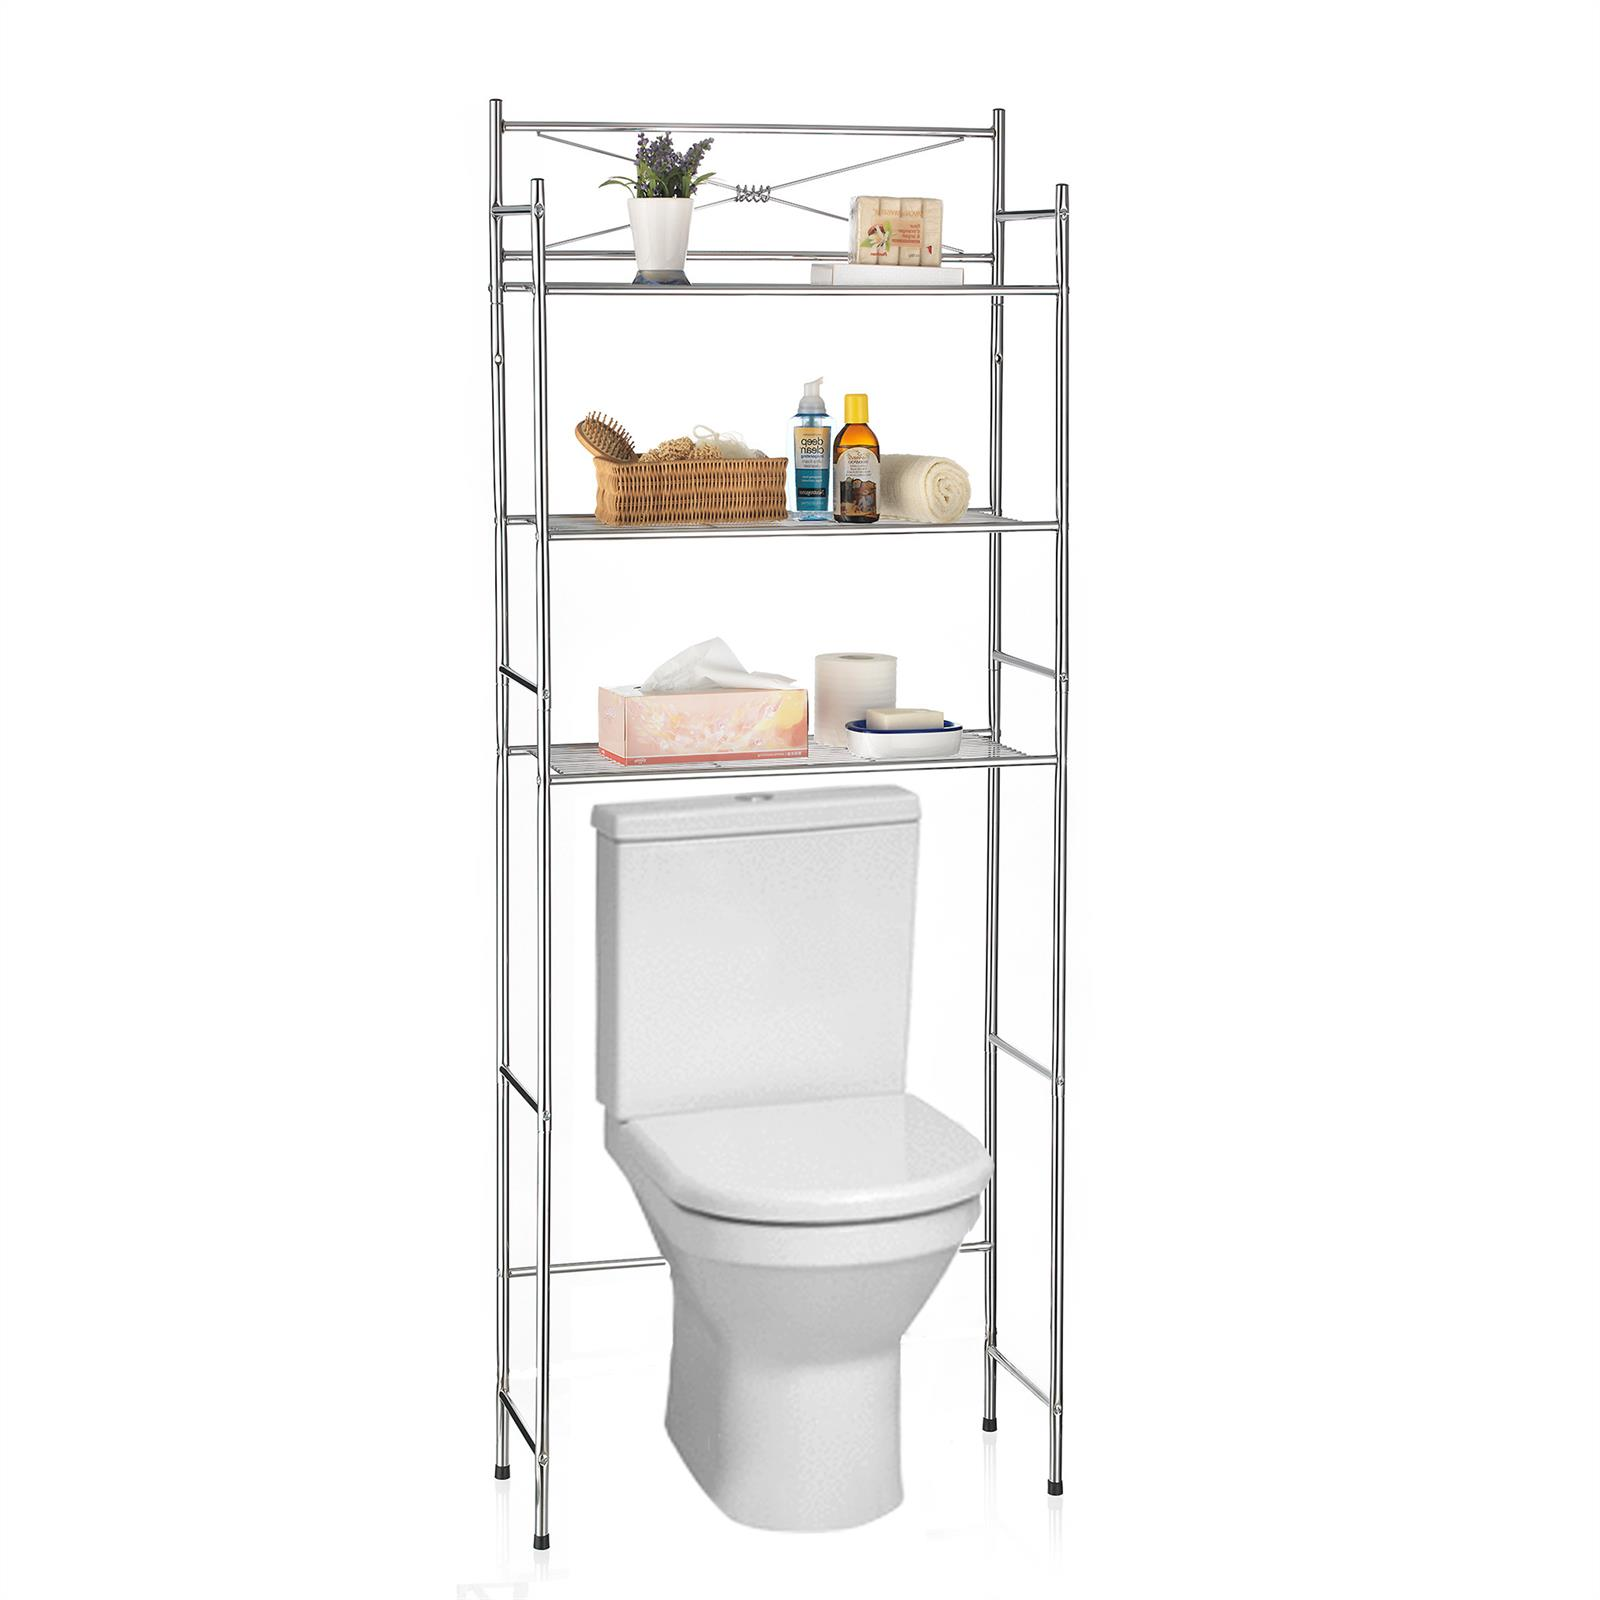 Badezimmer Regal Für über Die Toilette | Wc Regal Ikea Simple Regal ...